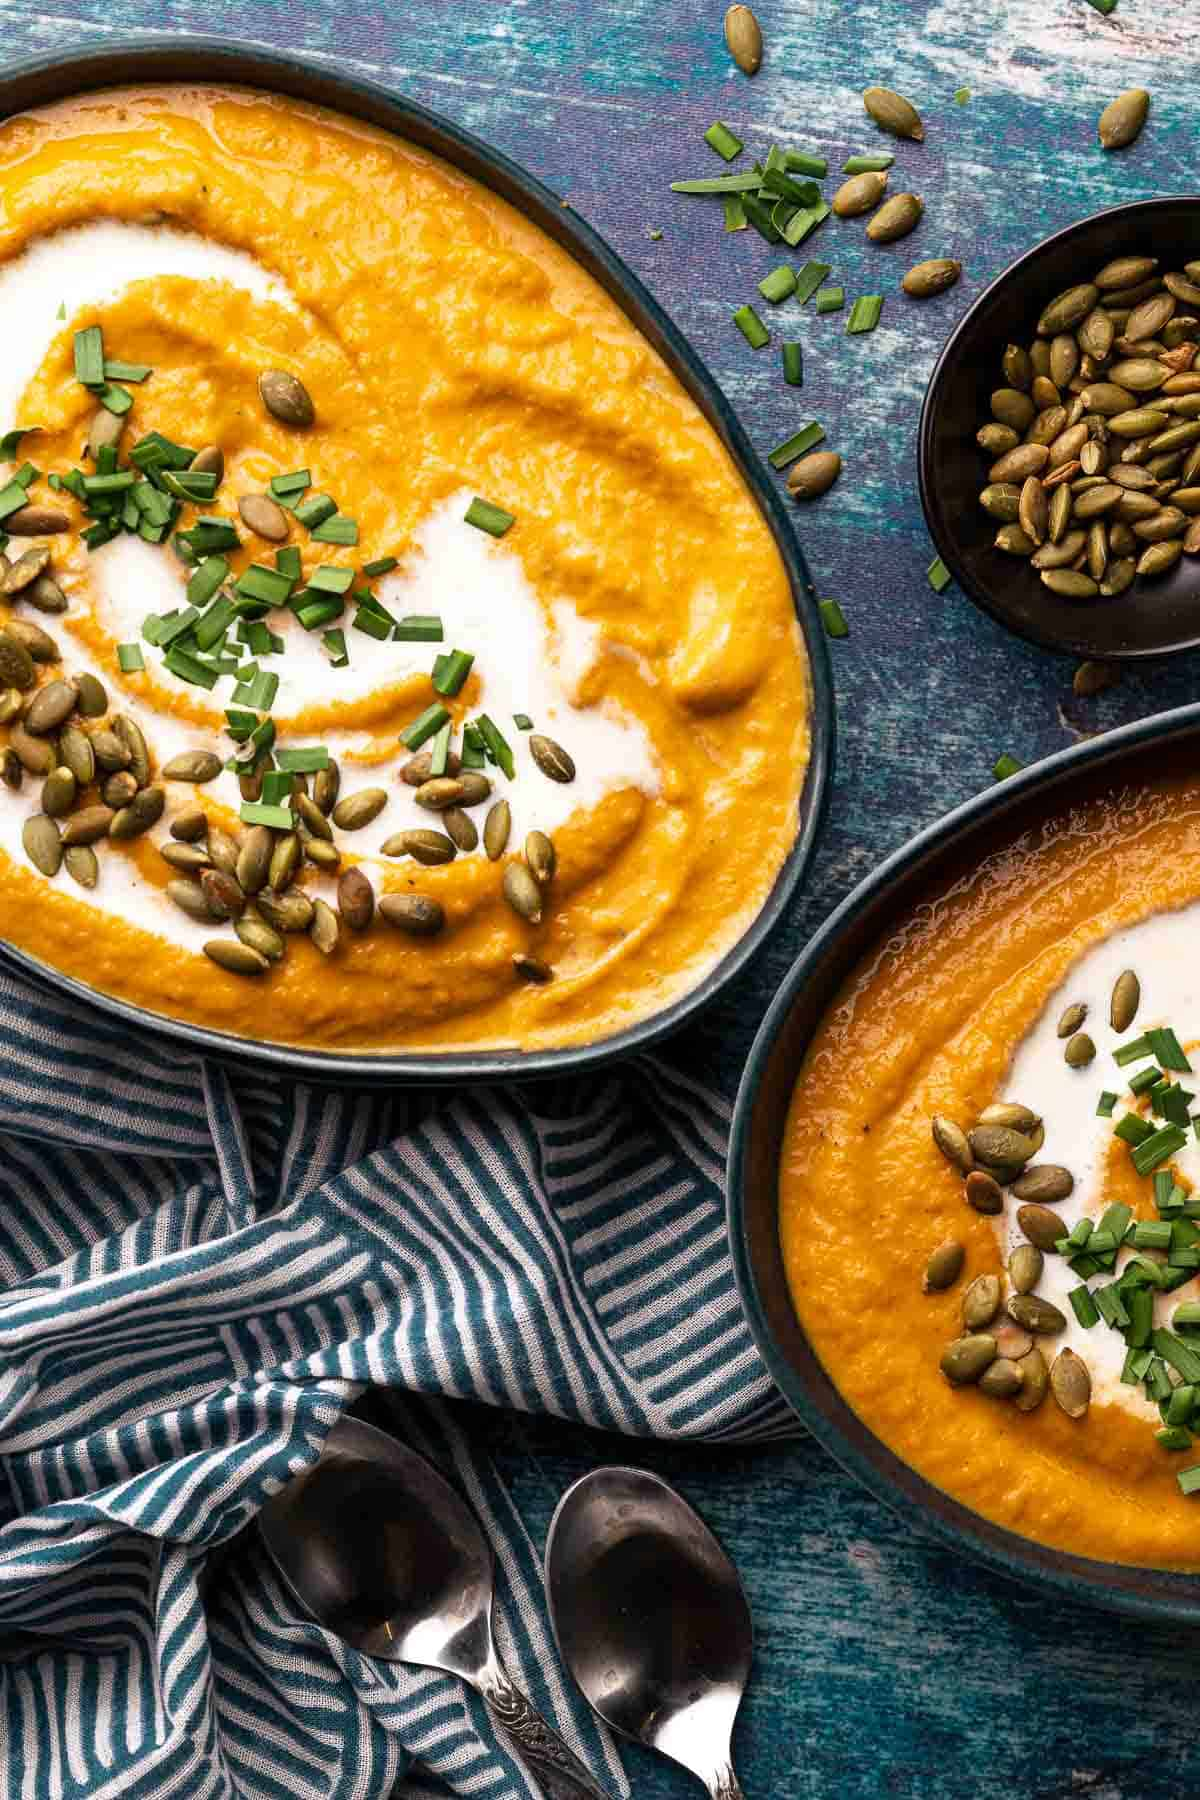 two bowls of pumpkin sweet potato soup with herb and pumpkin seed garnish and bowl of pumpkin seeds on the side